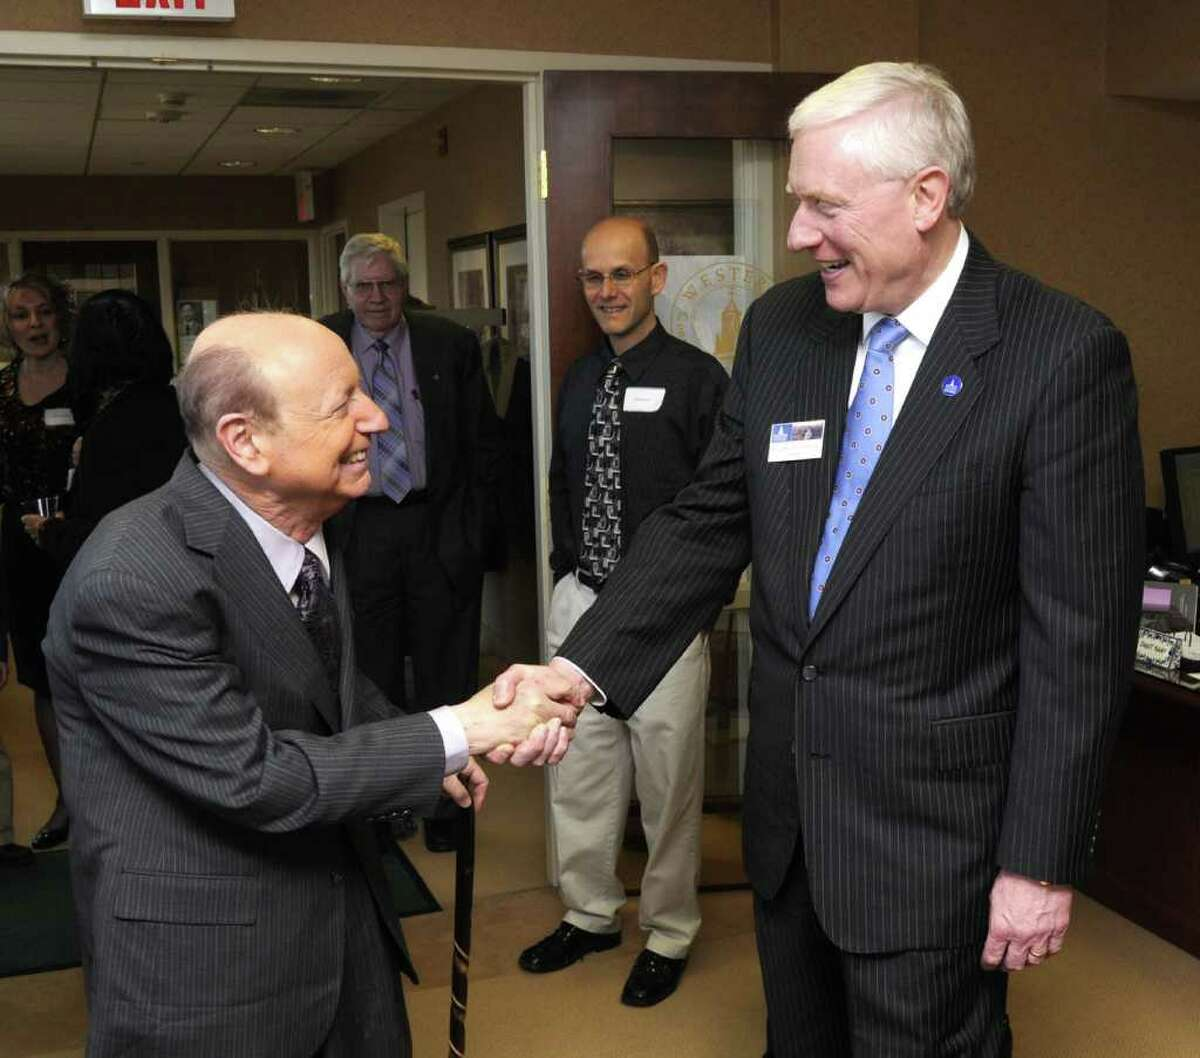 Dr. Mel Goldstein, meteorologist and author, is greeted by Western Connecticut State University President James Schmotter at a reception, before giving the Presidents Lecture,